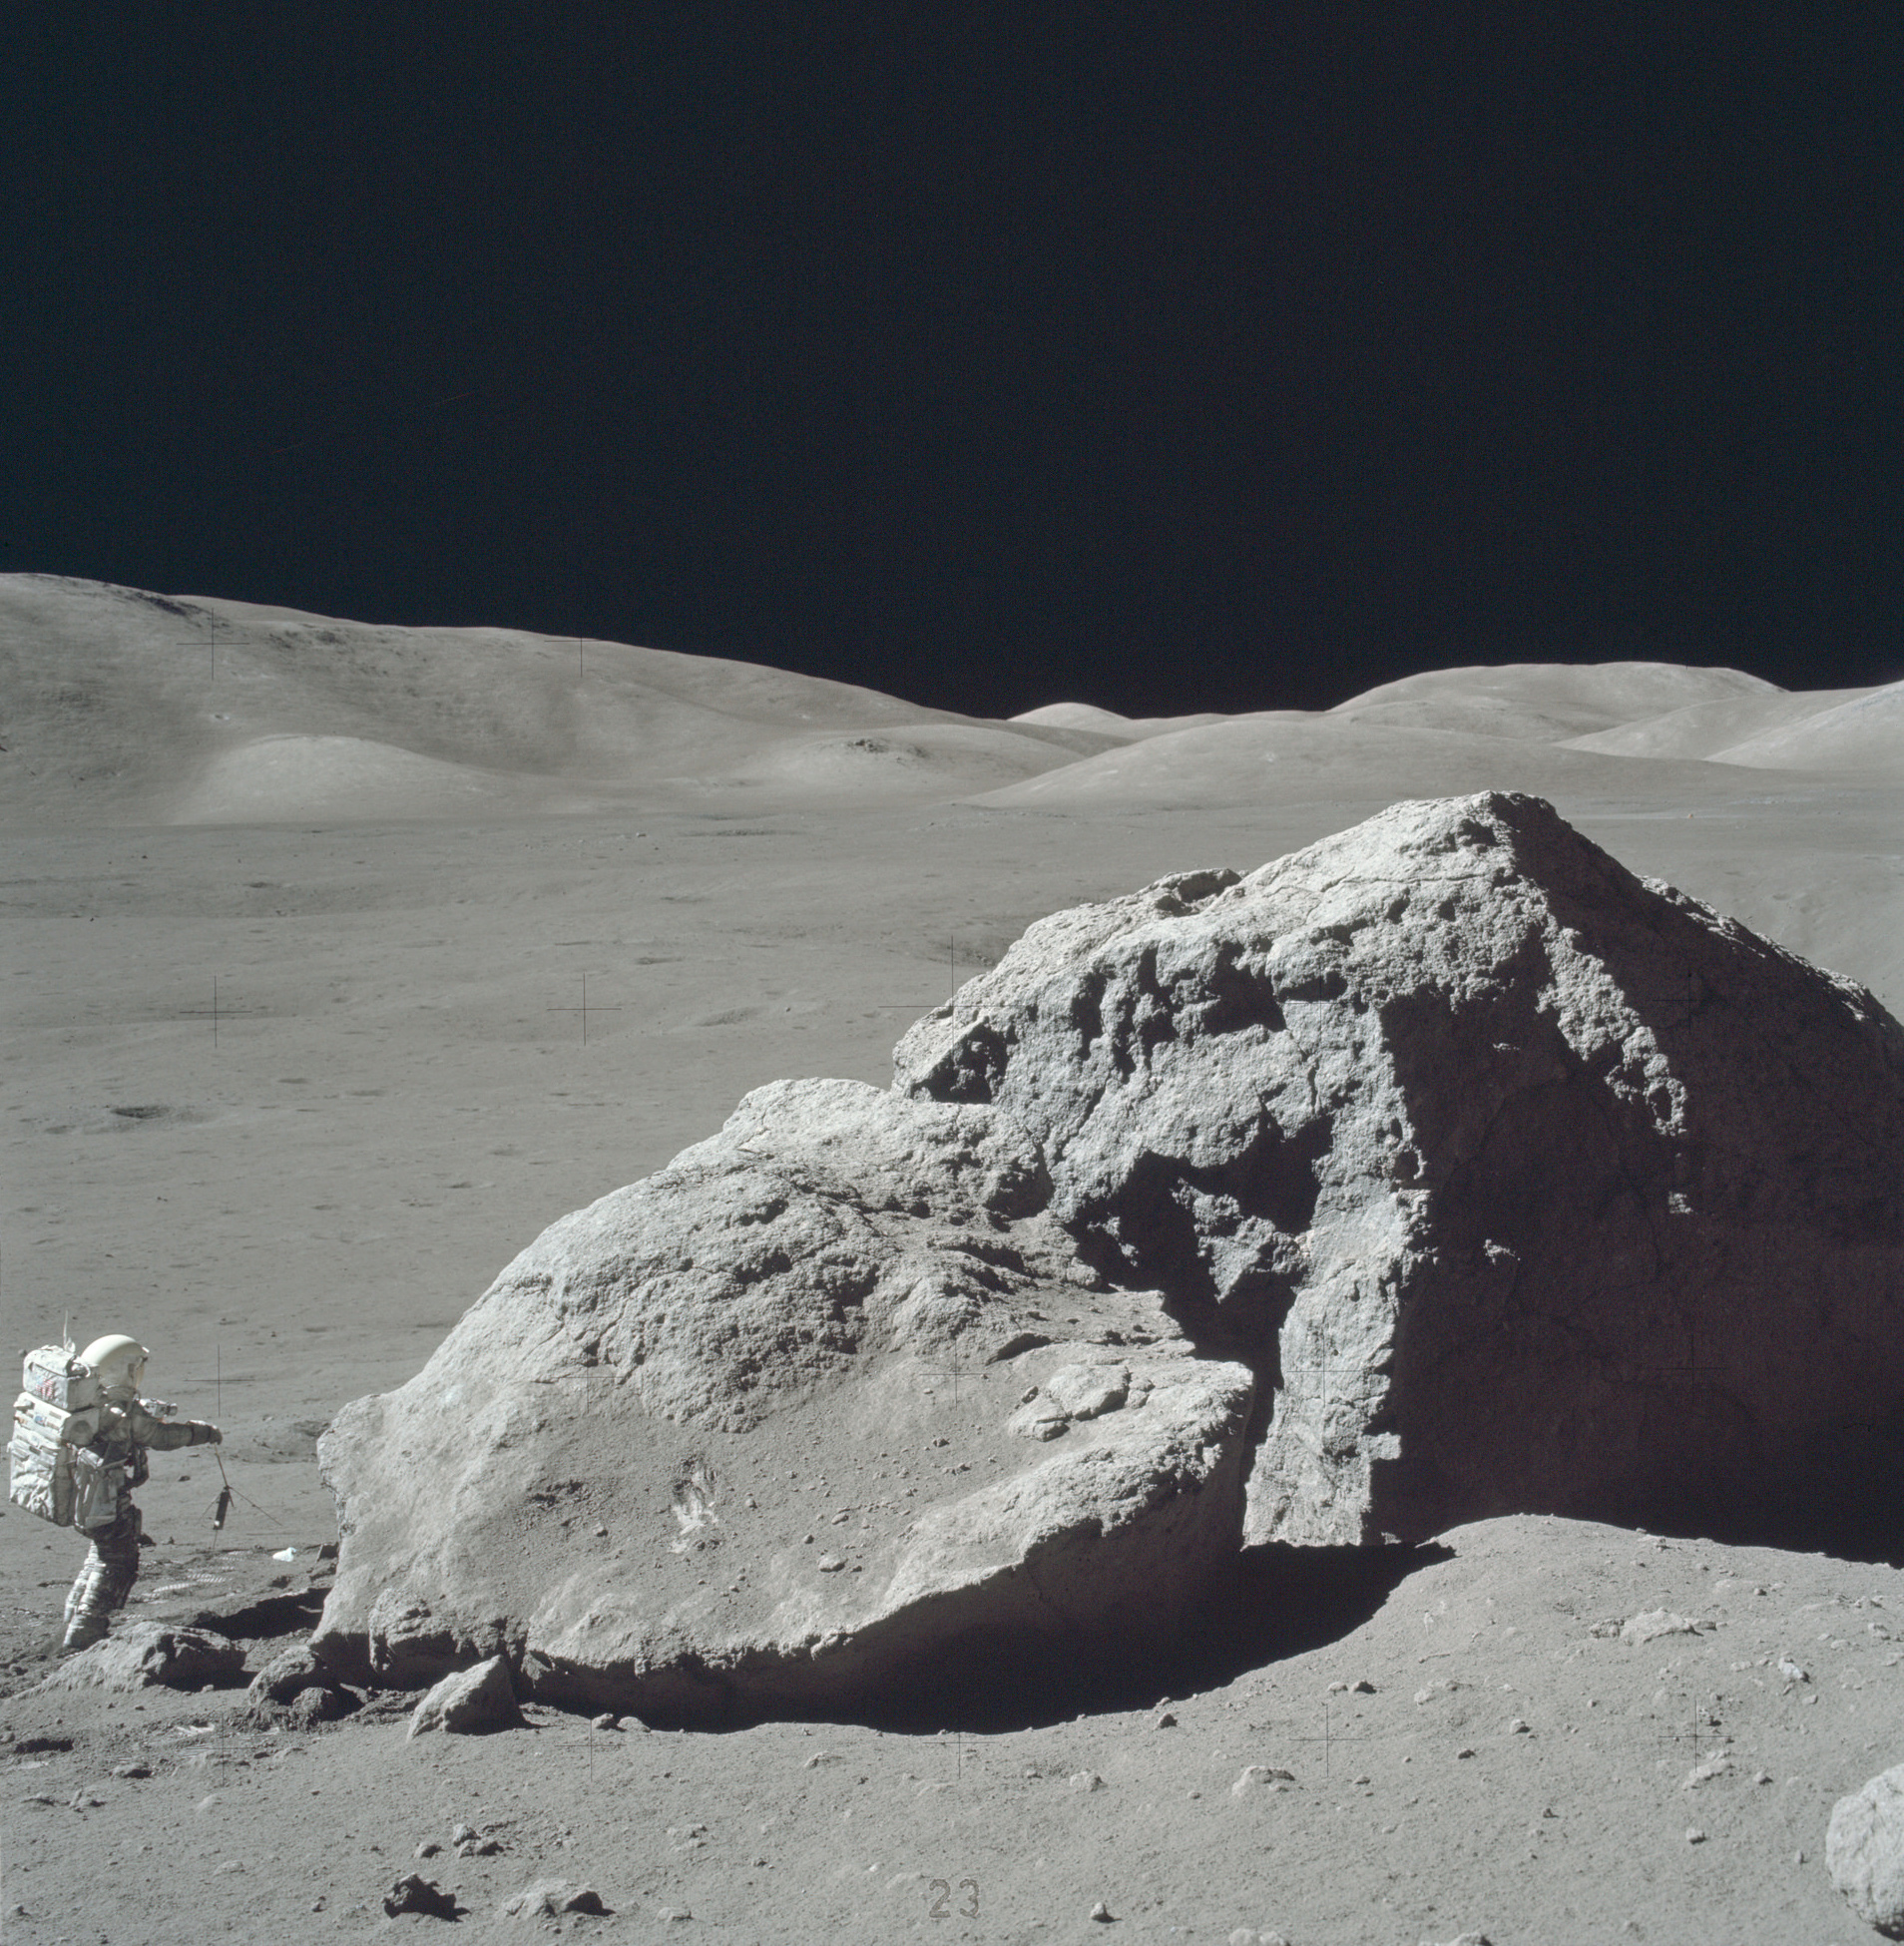 Scientist-Astronaut Harrison H. Schmitt is photographed standing next to a huge, split boulder at Station 6 (base of North Massif) during the third Apollo 17 extravehicular activity (EVA-3) at the Taurus-Littrow landing site on the Moon. Image credit: NASA